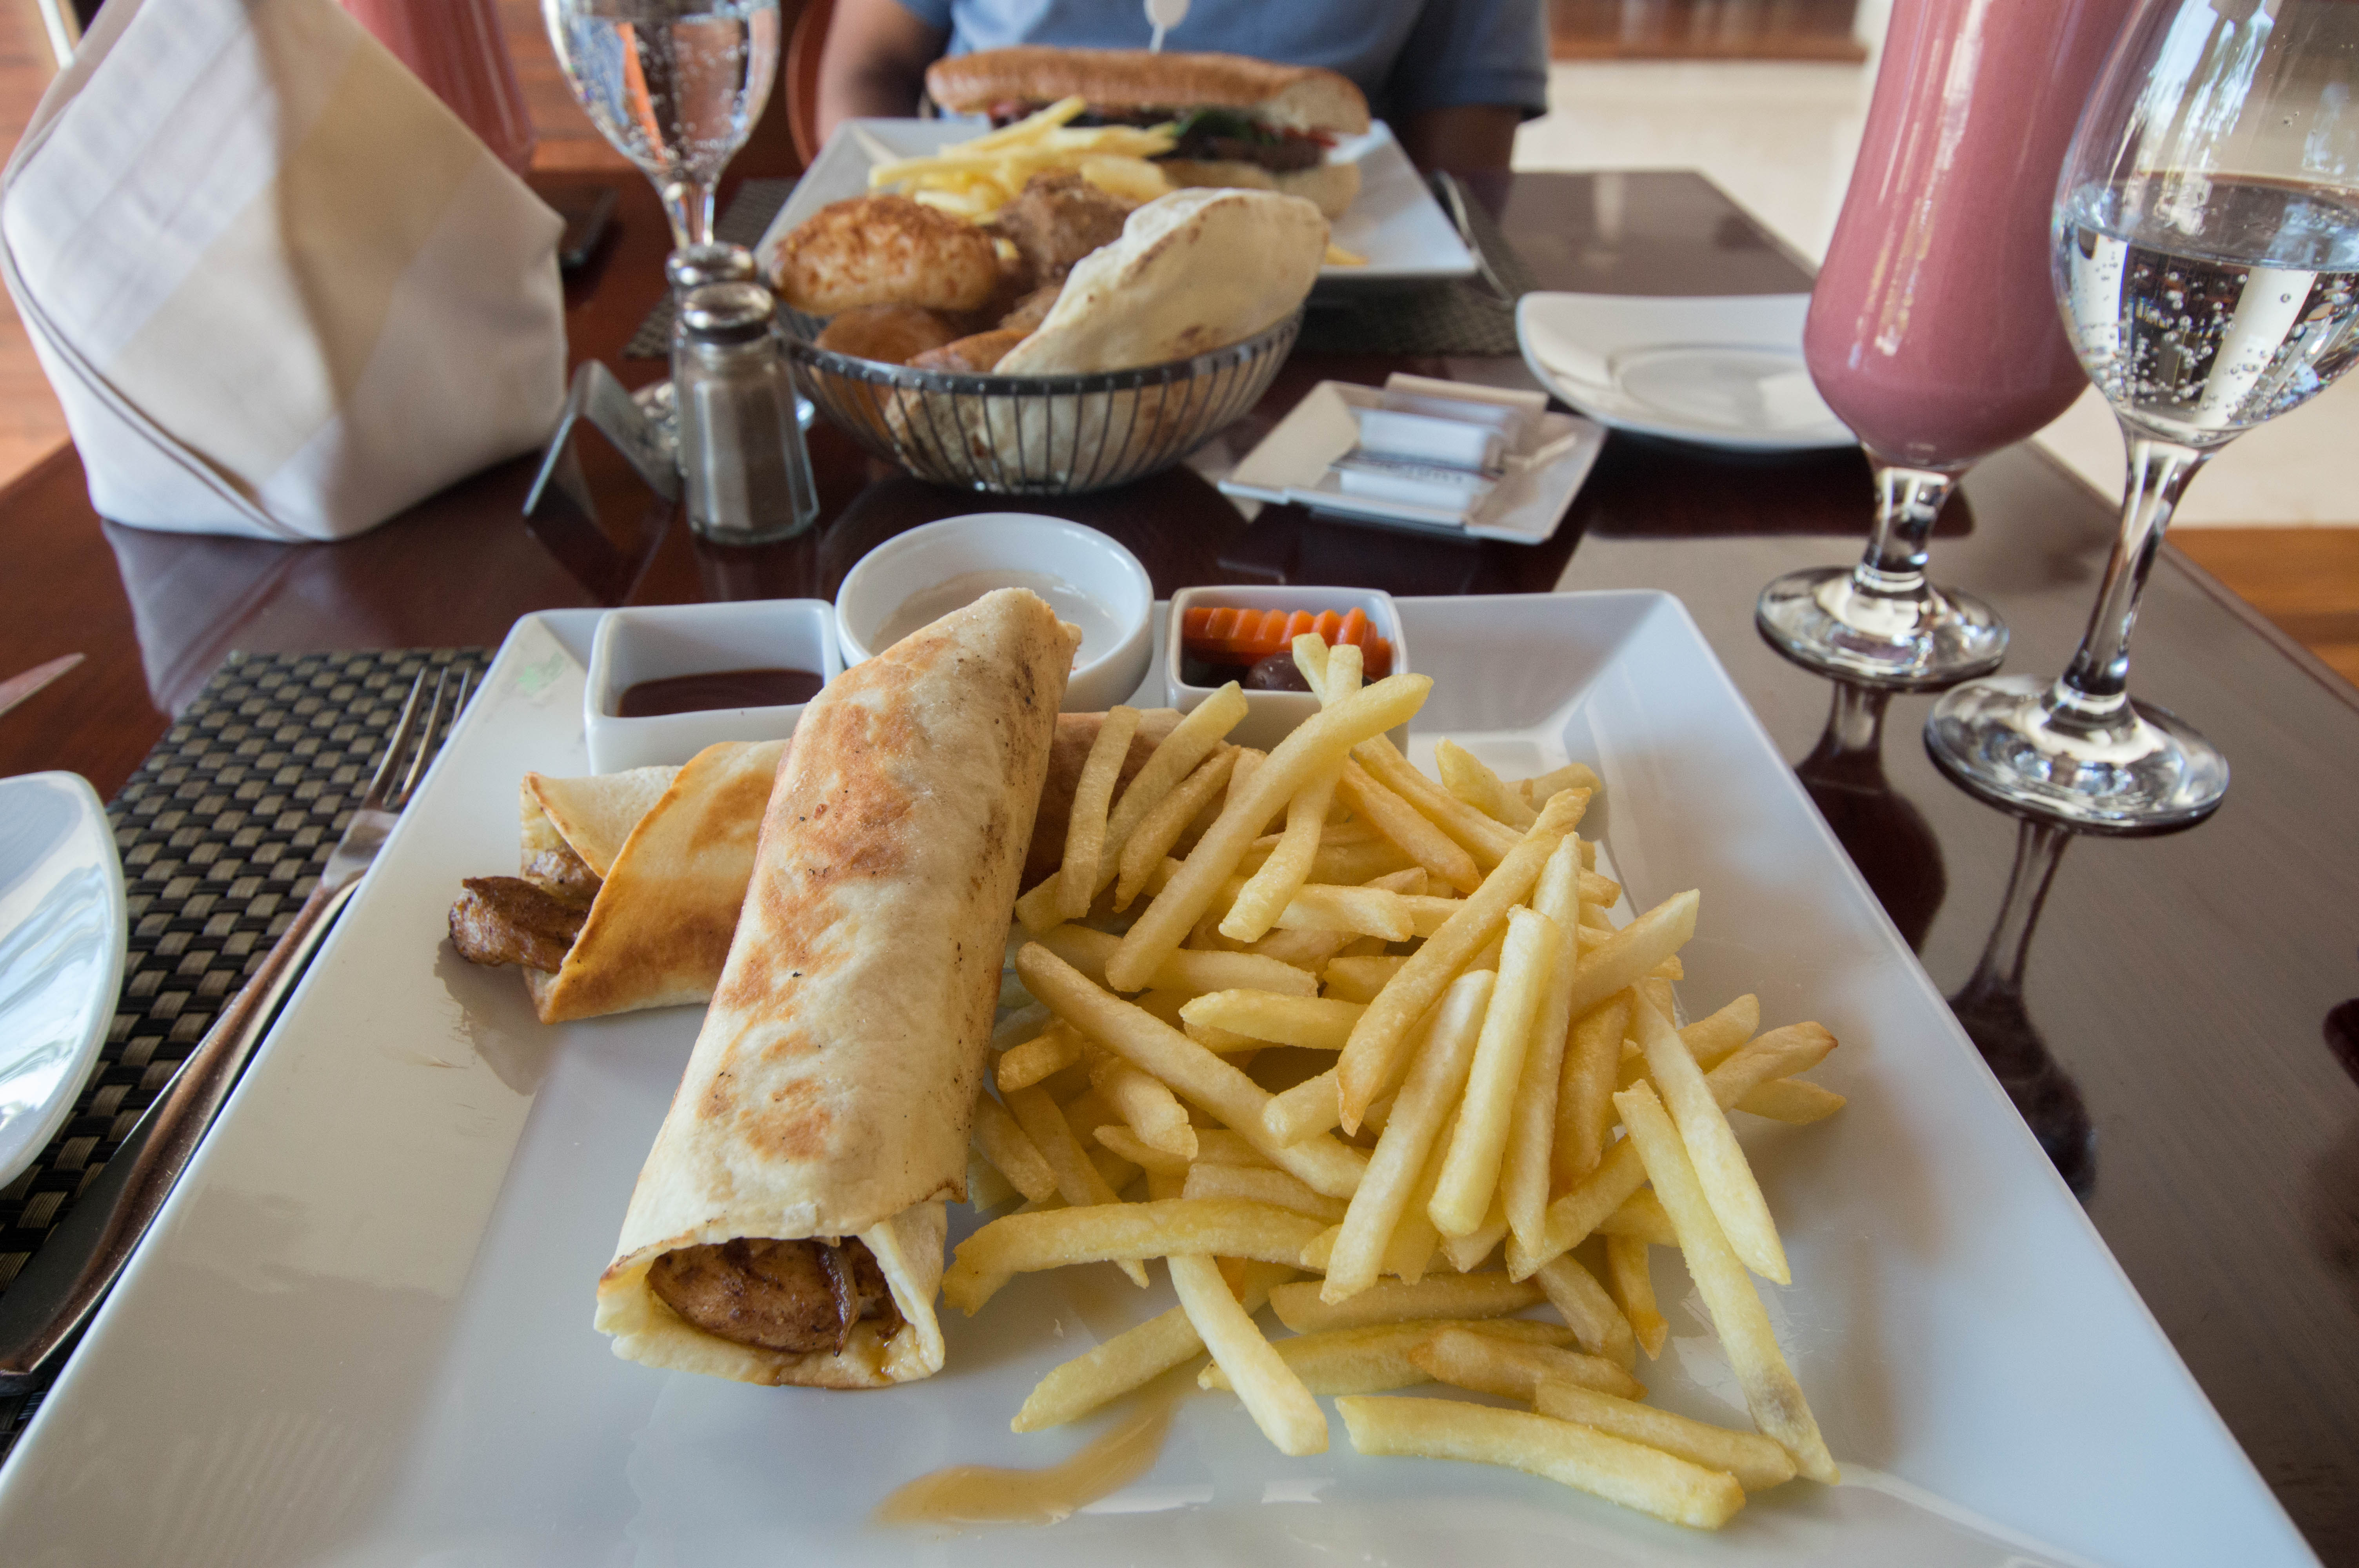 Chicken Shawarma Wrap And Steak Sandwich, Lunch at Hilton Hotel, Luxor, Egypt